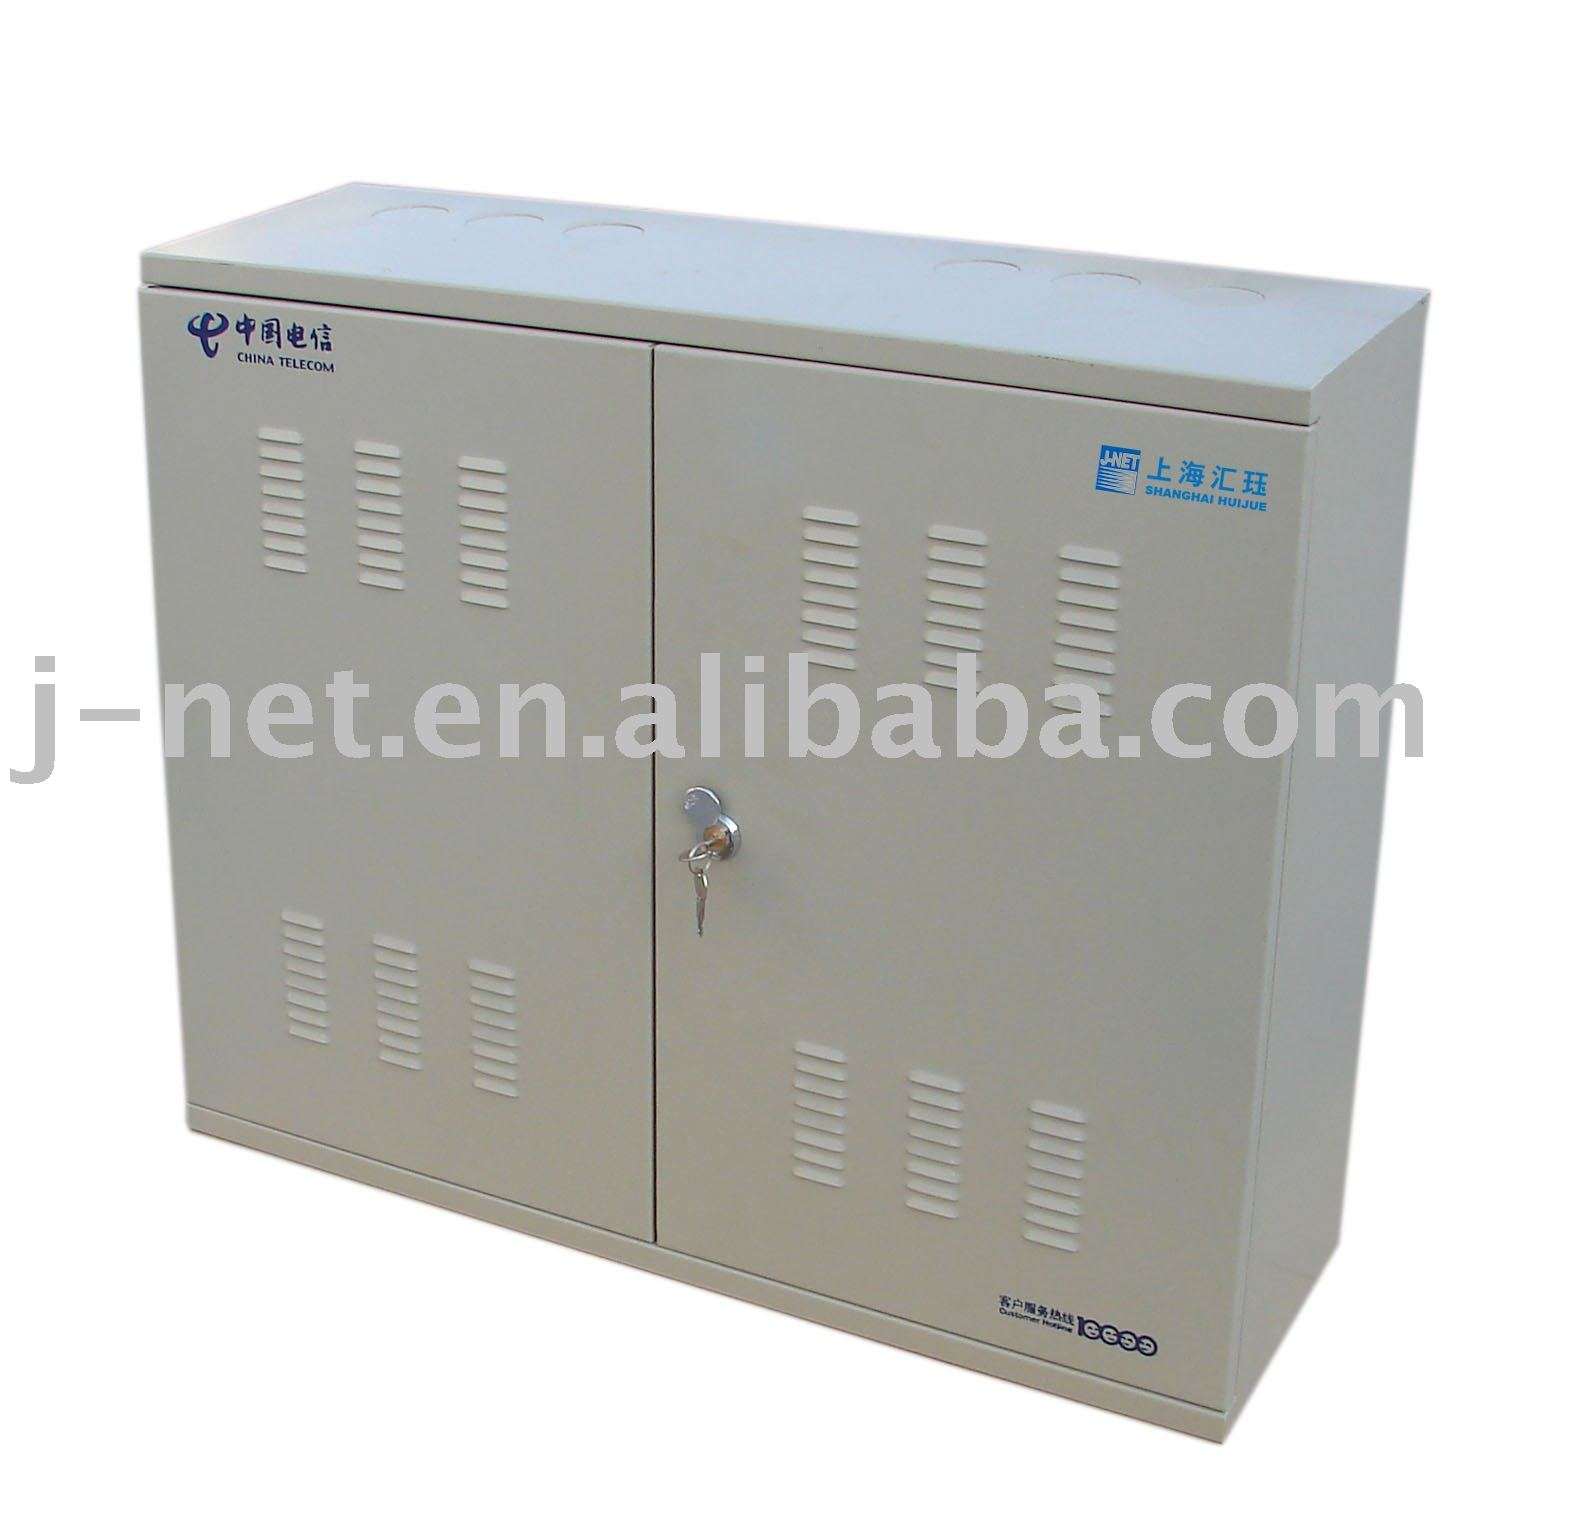 Optical fiber distribution box/distribution case/closure/wiring closet